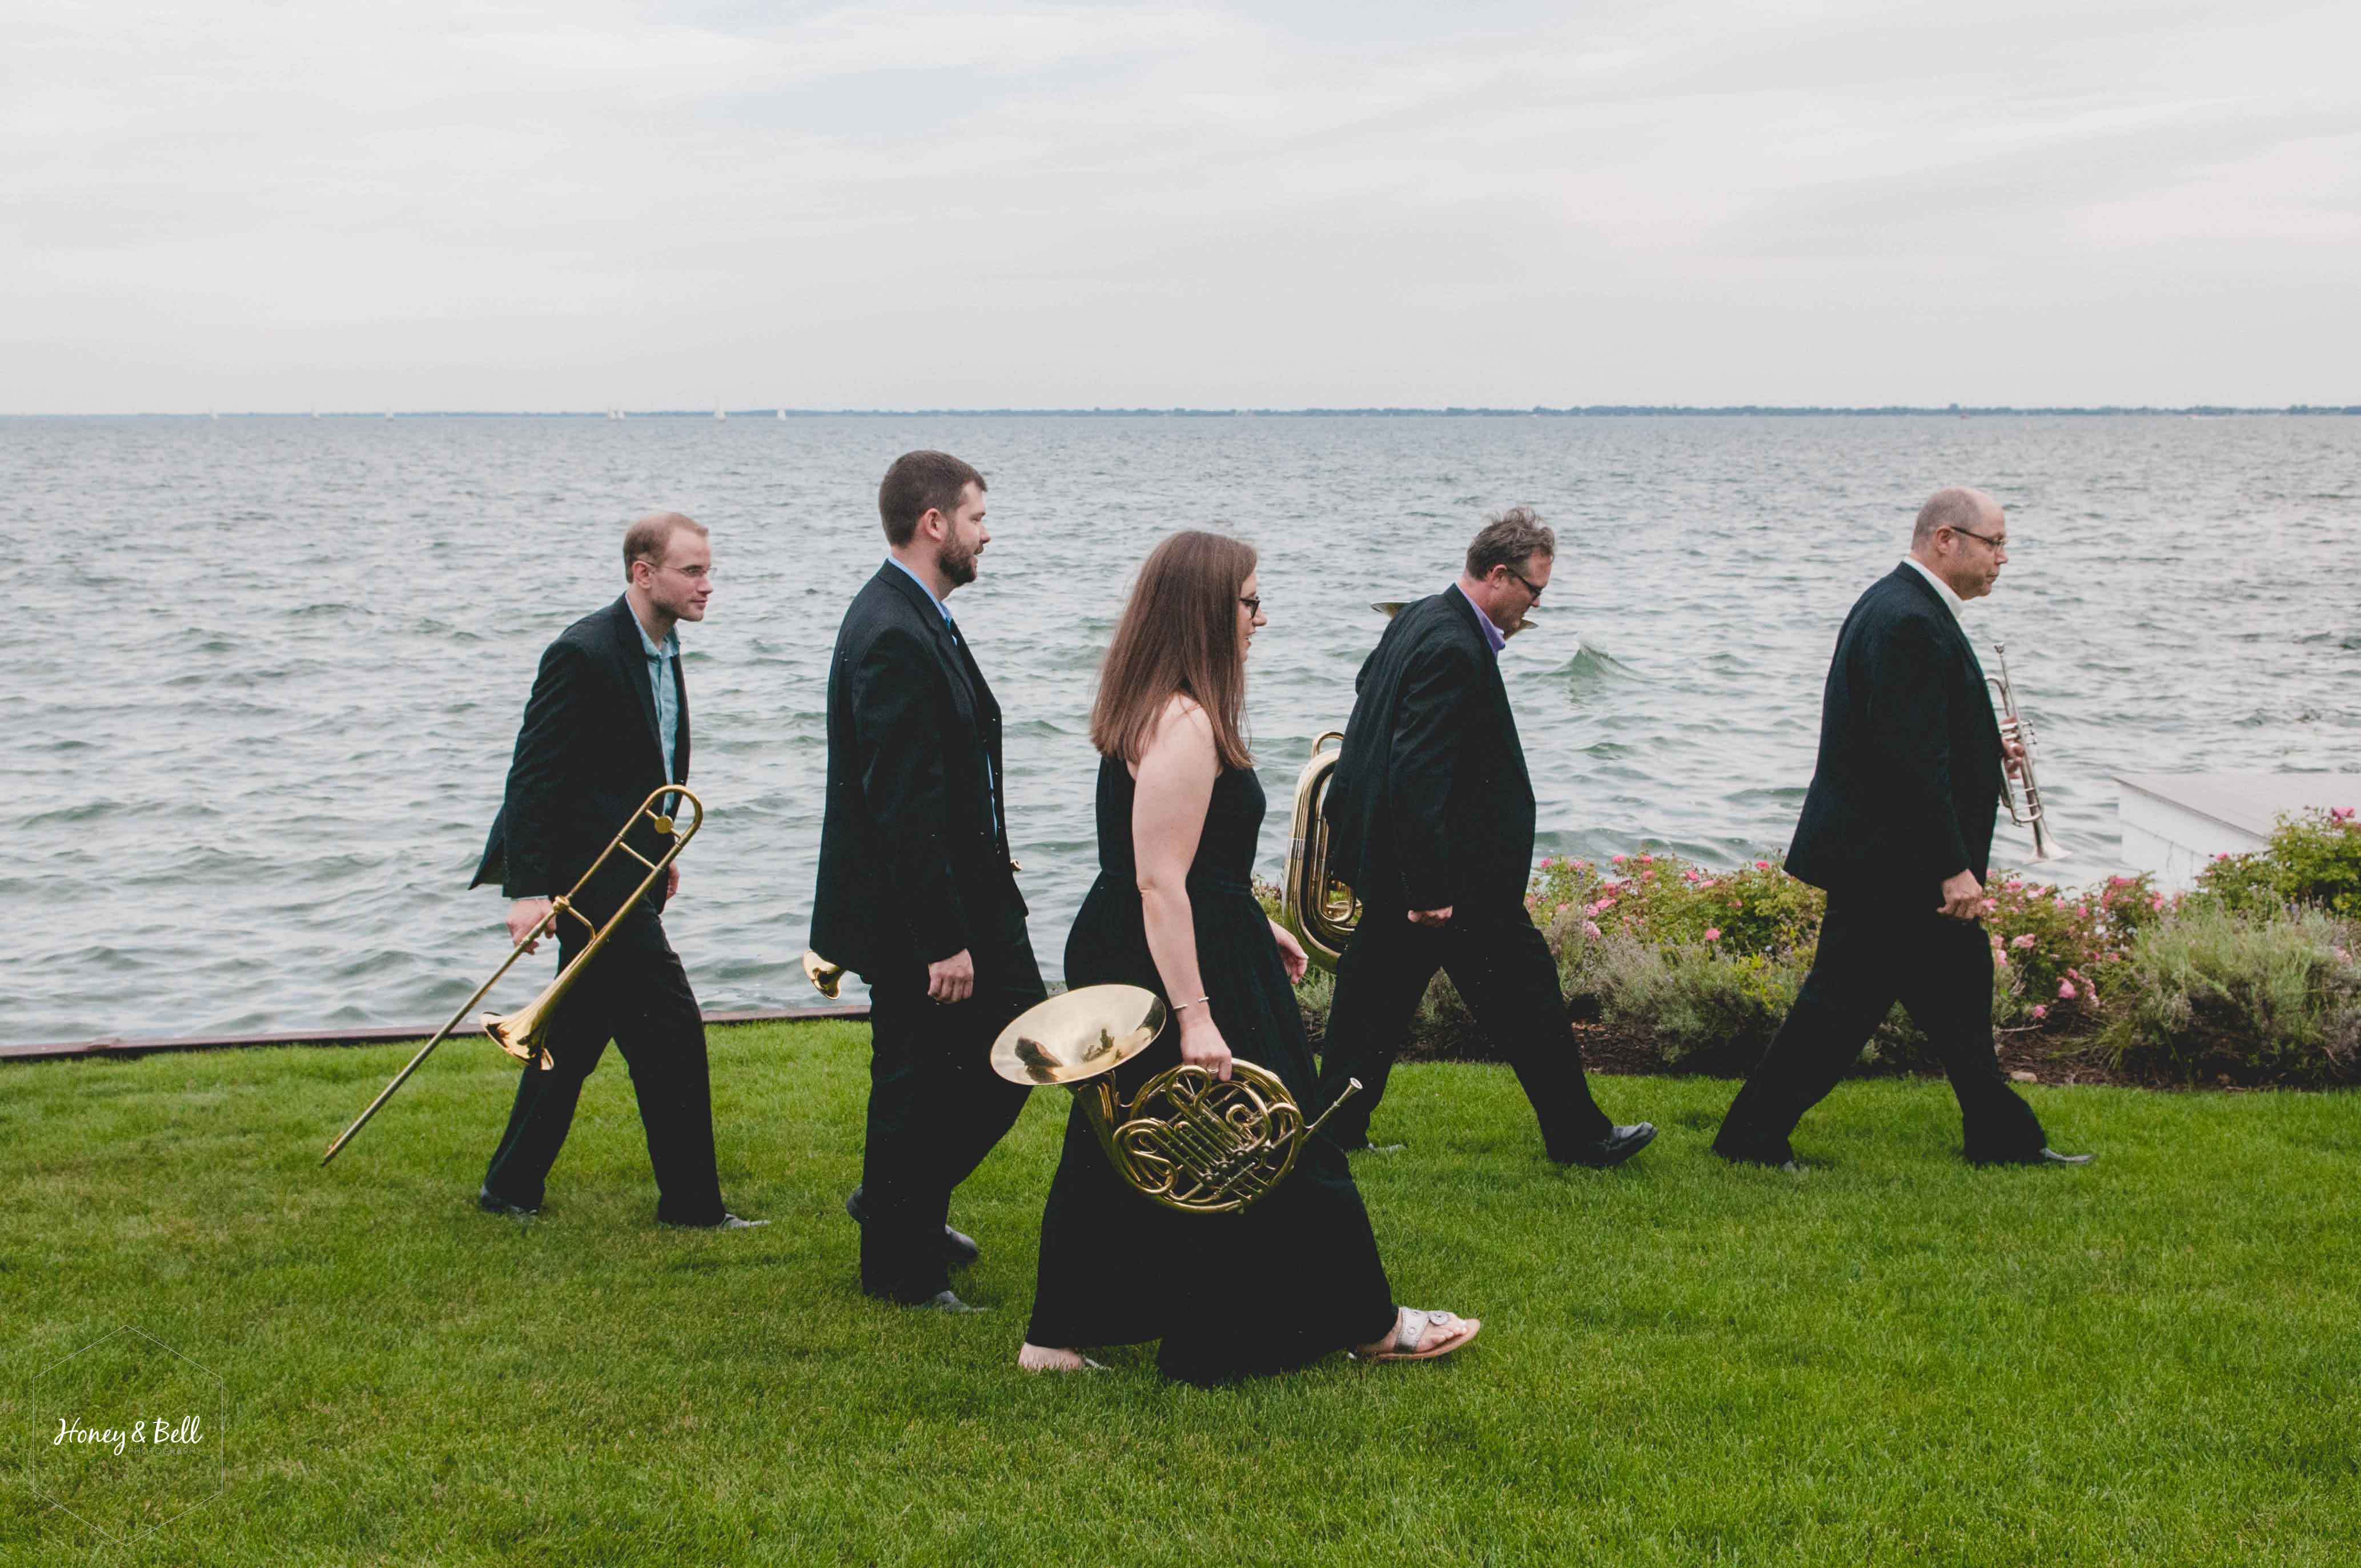 north-of-canada-brass-quintet-detroit-michigan-grosse-pointe-band-photographer-17